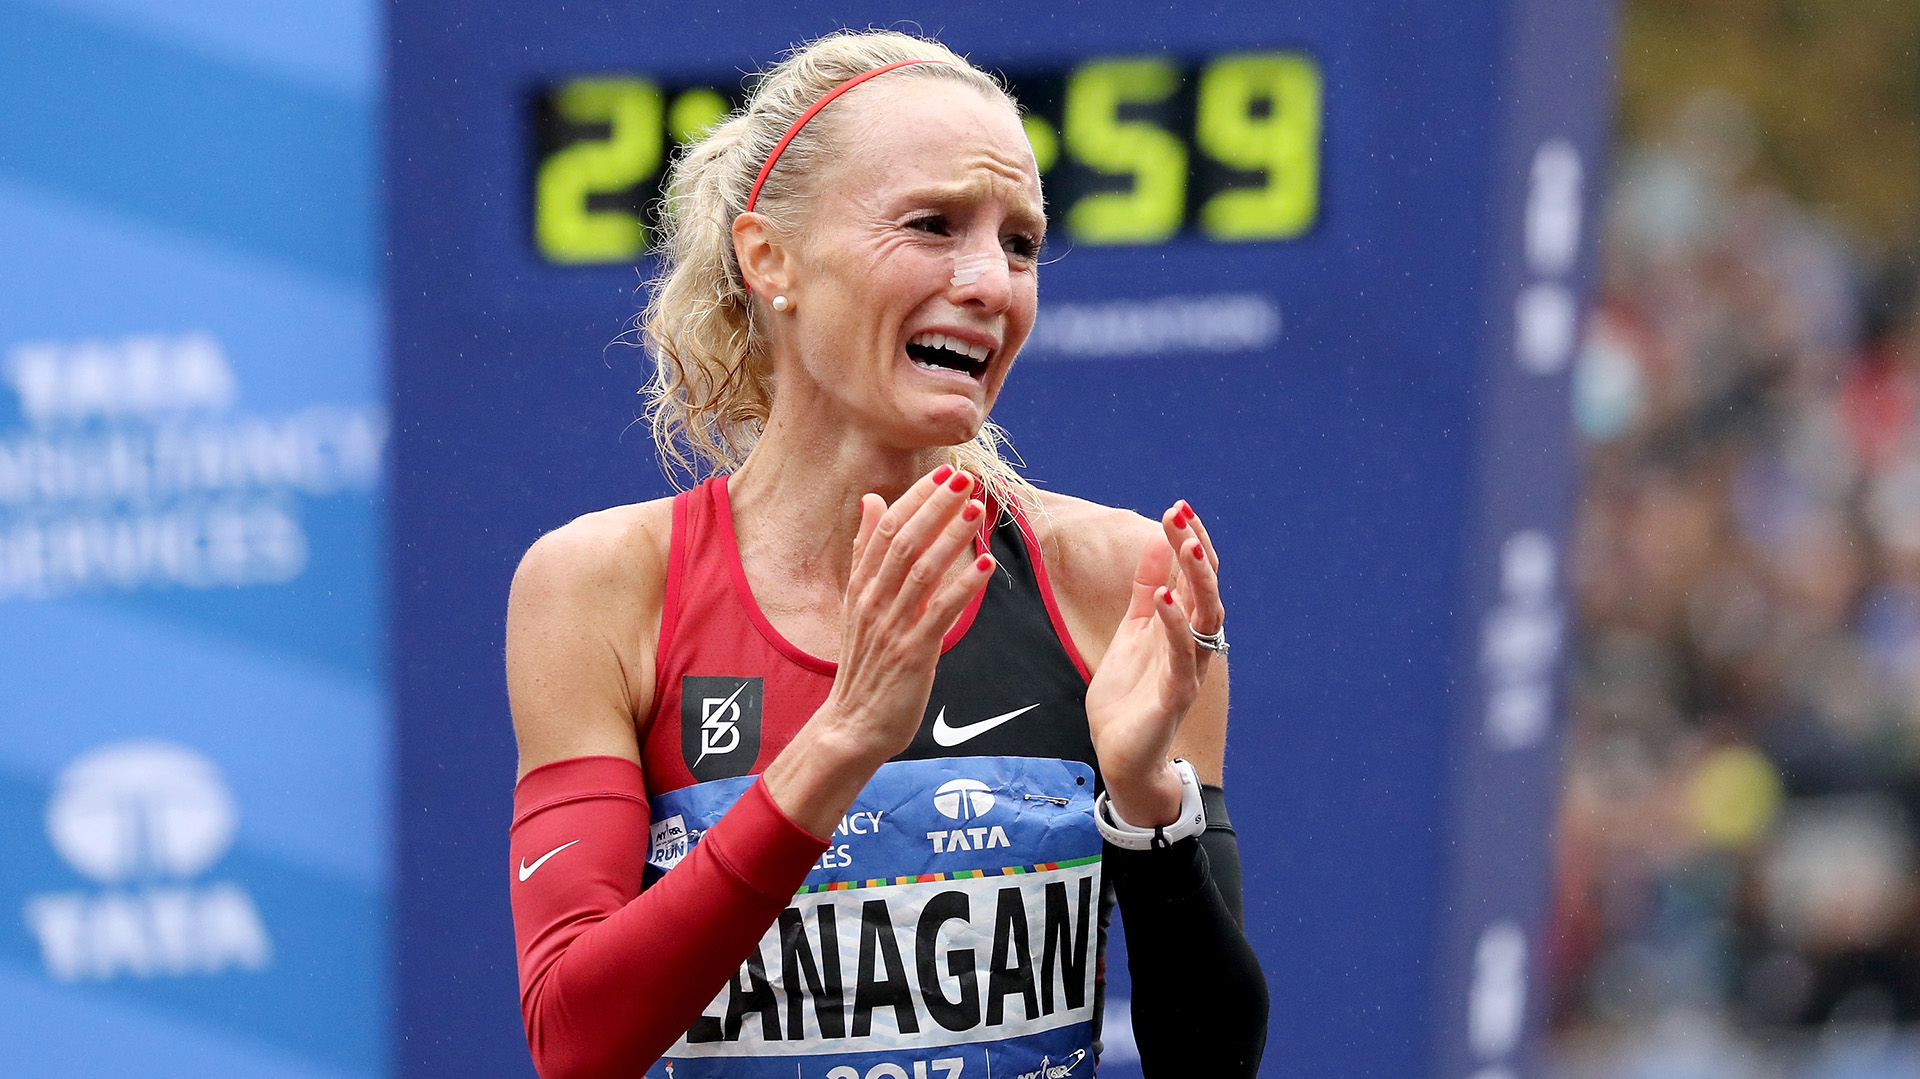 NEW YORK, NY - NOVEMBER 05: Shalane Flanagan of the United States celebrates winning the Professional Women's Division during the 2017 TCS New York City Marathon in Central Park on November 5, 2017 in New York City. (Photo by Elsa/Getty Images)